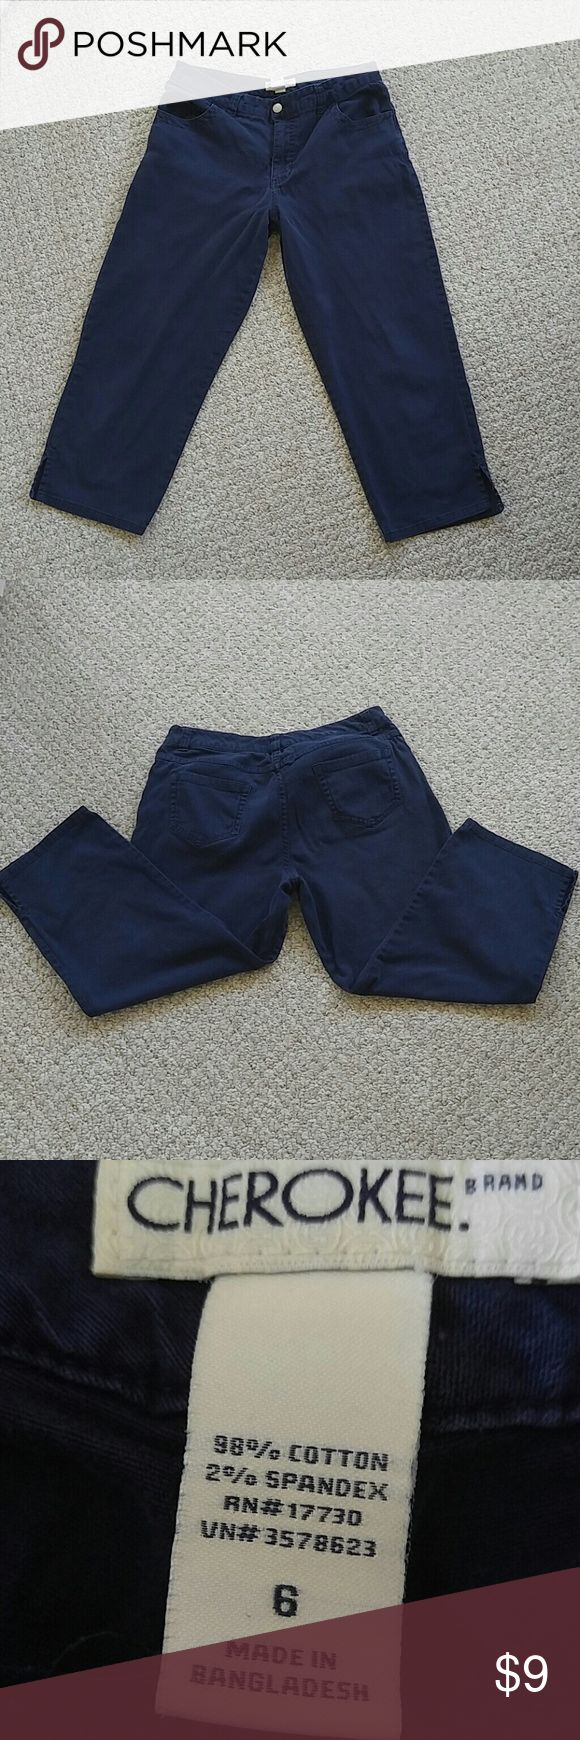 CLEARANCE! Navy Cherokee brand pants. BUY NOW! Navy blue Cherokee brand size 6 pants your basic cotton pants. 98% cotton 2% spandex. Machine wash cold with like colors only non-chlorine bleach when needed tumble dry low warm iron if necessary. Cherokee Pants Ankle & Cropped